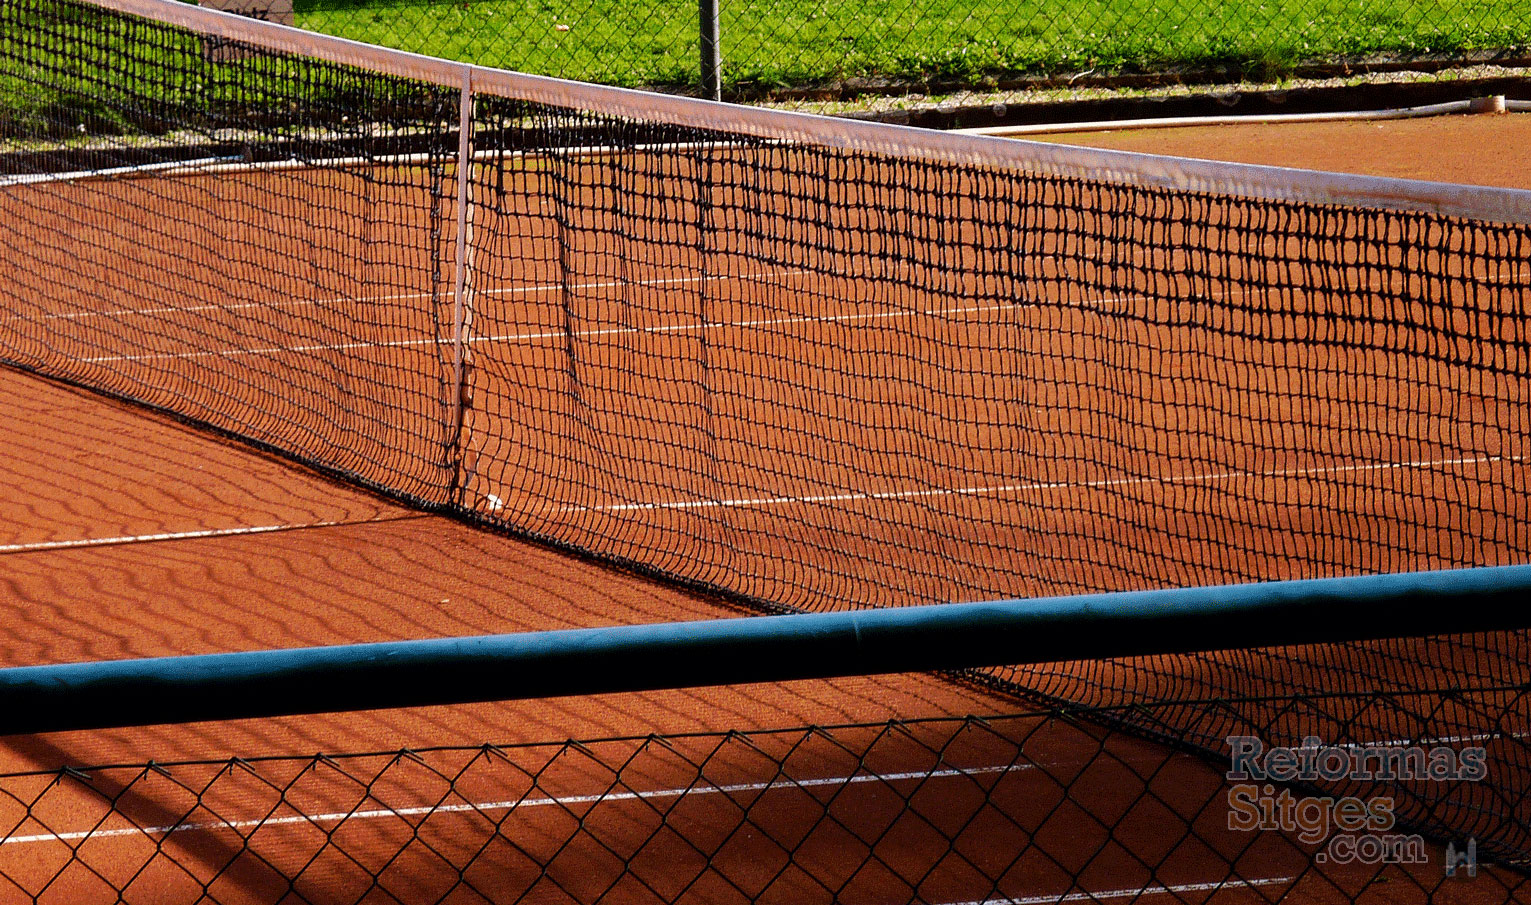 Tennis Courts & Leisure​ - Sitges